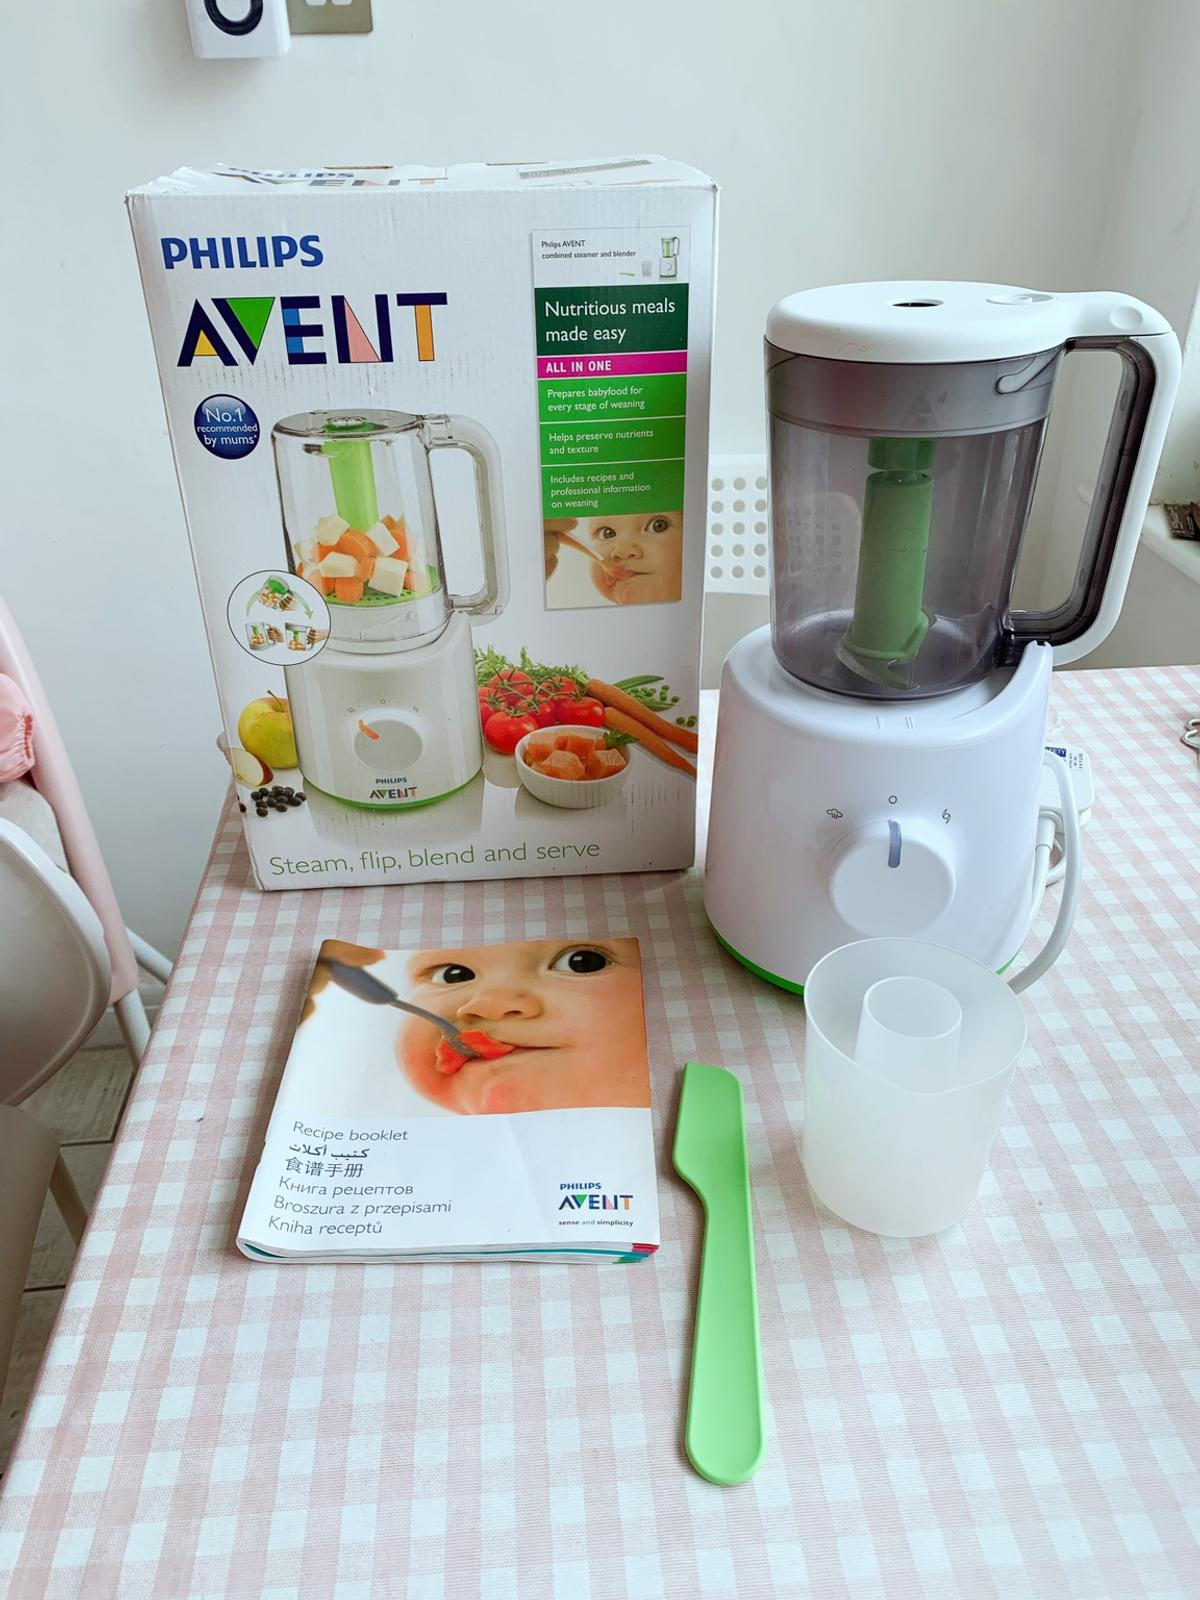 Philips Avent Baby Food Steamer And Blender In M33 Trafford